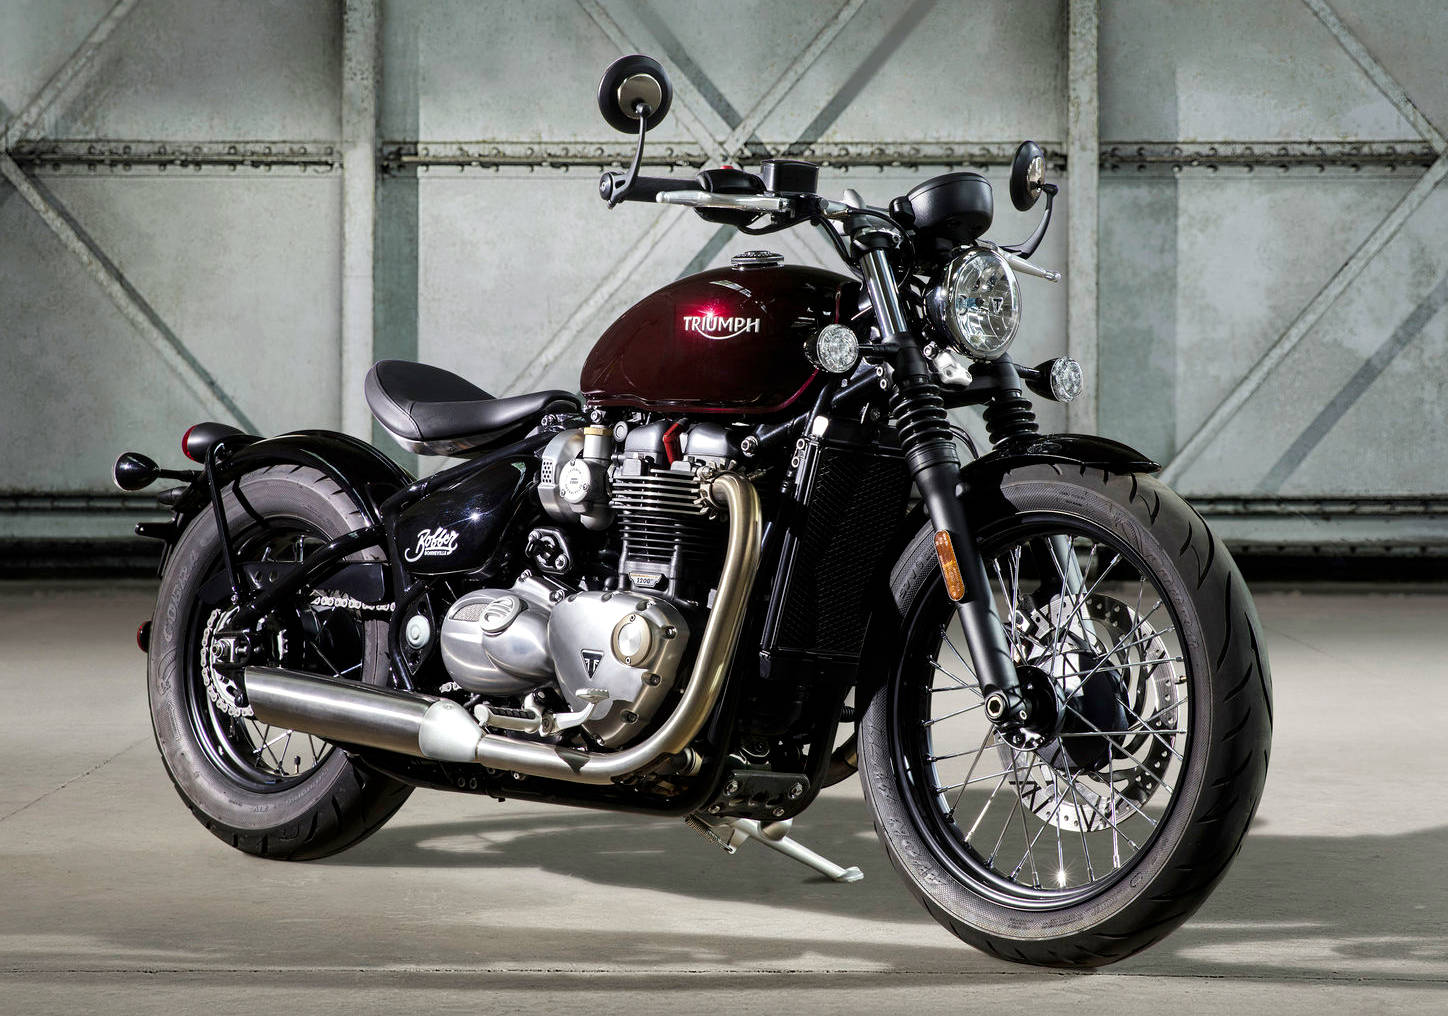 new bonneville bobber gets 1200 cc engine from t120 with video. Black Bedroom Furniture Sets. Home Design Ideas